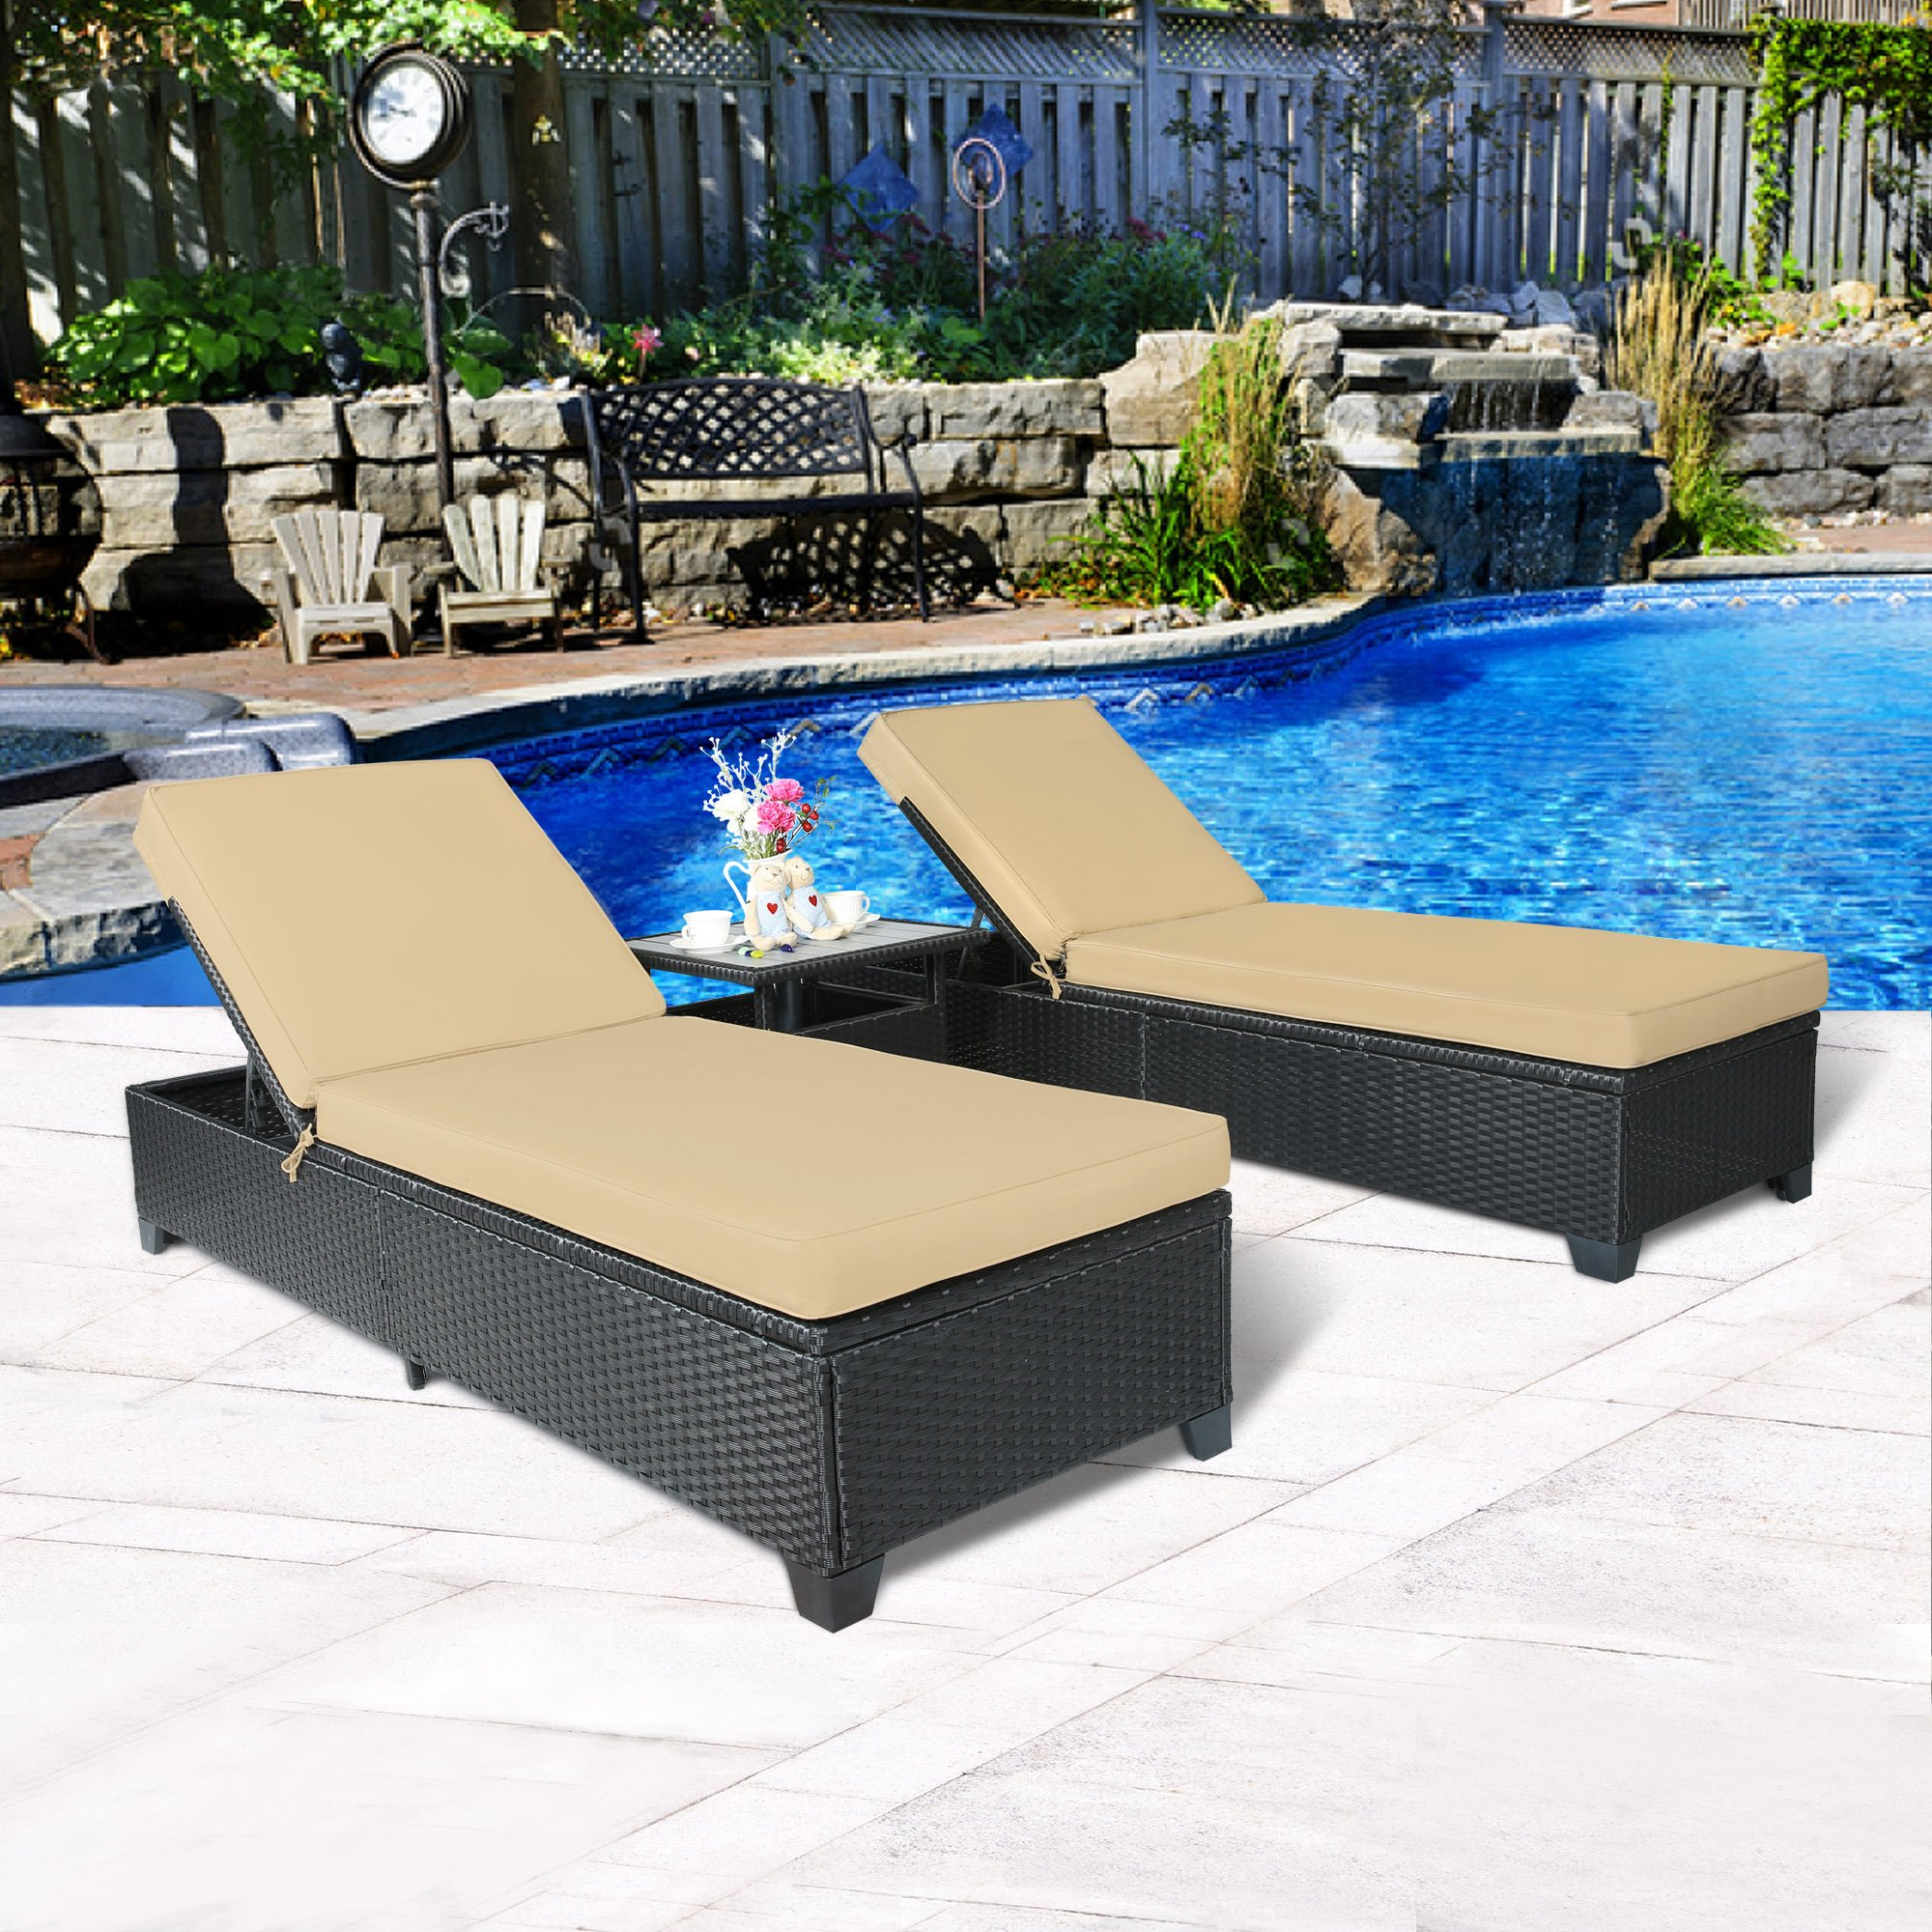 Buy Cloud Mountain 3pc Outdoor Rattan Chaise Lounge Chair Inside Most Popular Outdoor Adjustable Rattan Wicker Chaise Pool Chairs With Cushions (Gallery 11 of 25)